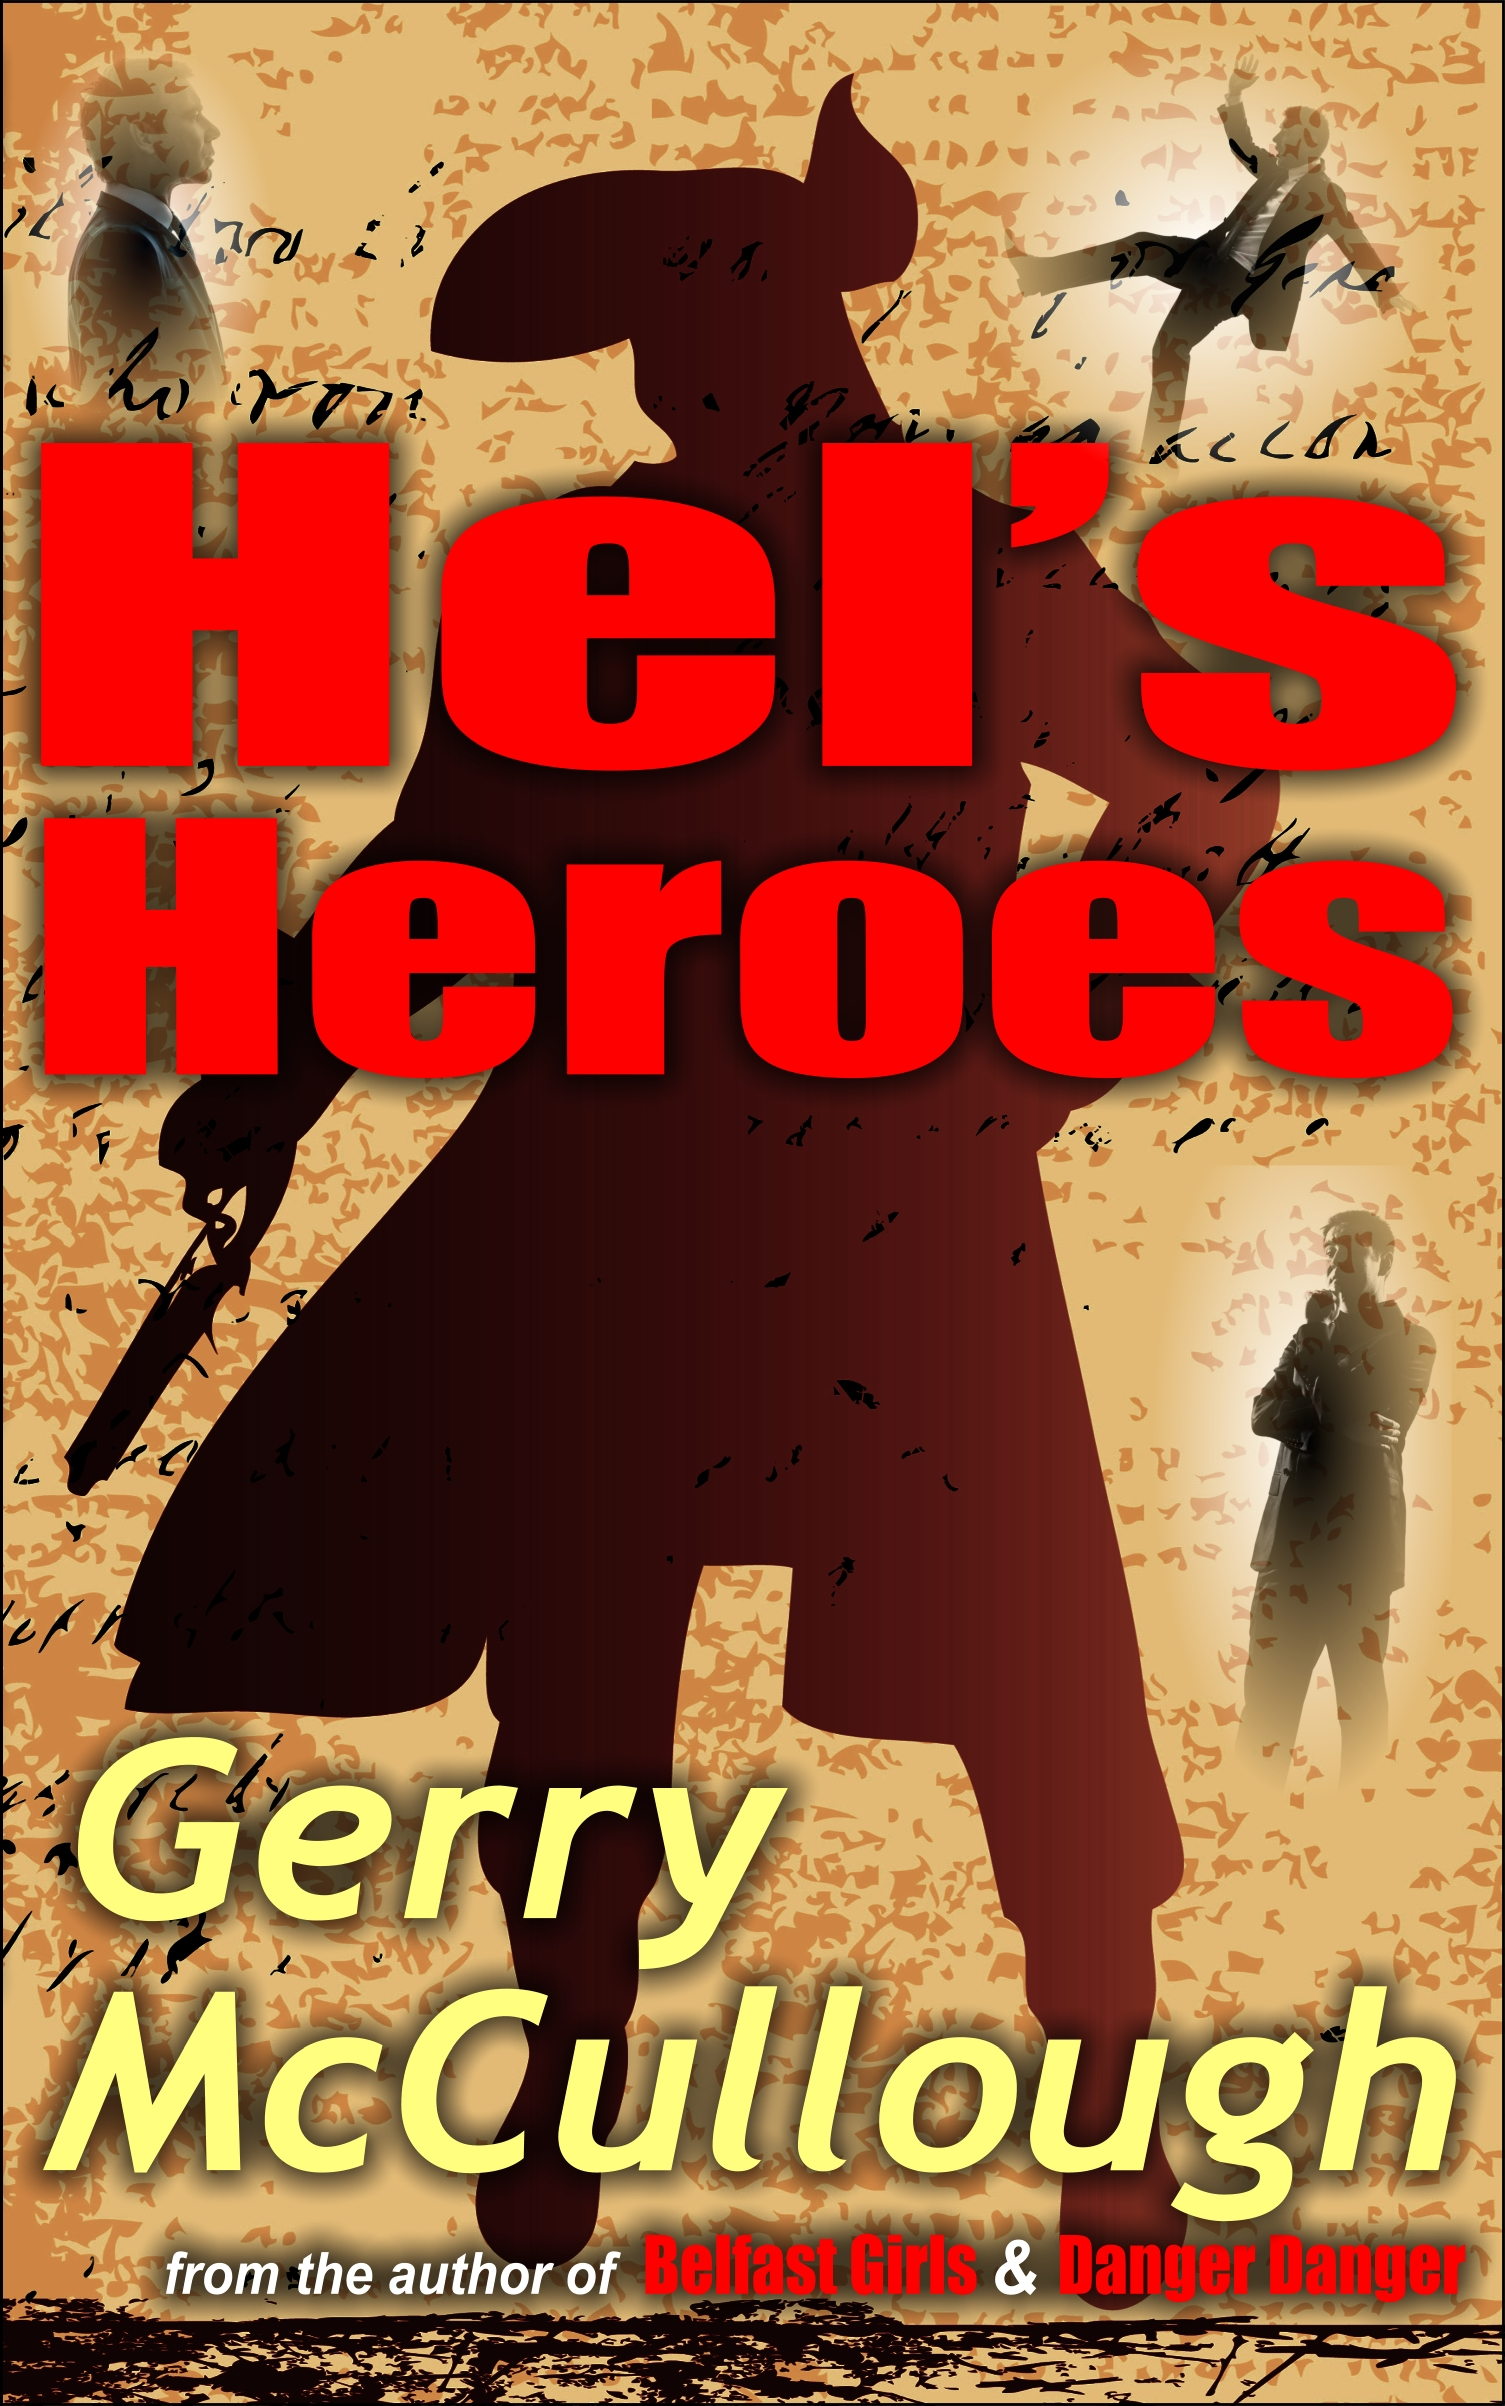 Hel's Heroes – romantic comedy, buy Kindle or paperback edition now from Amazon